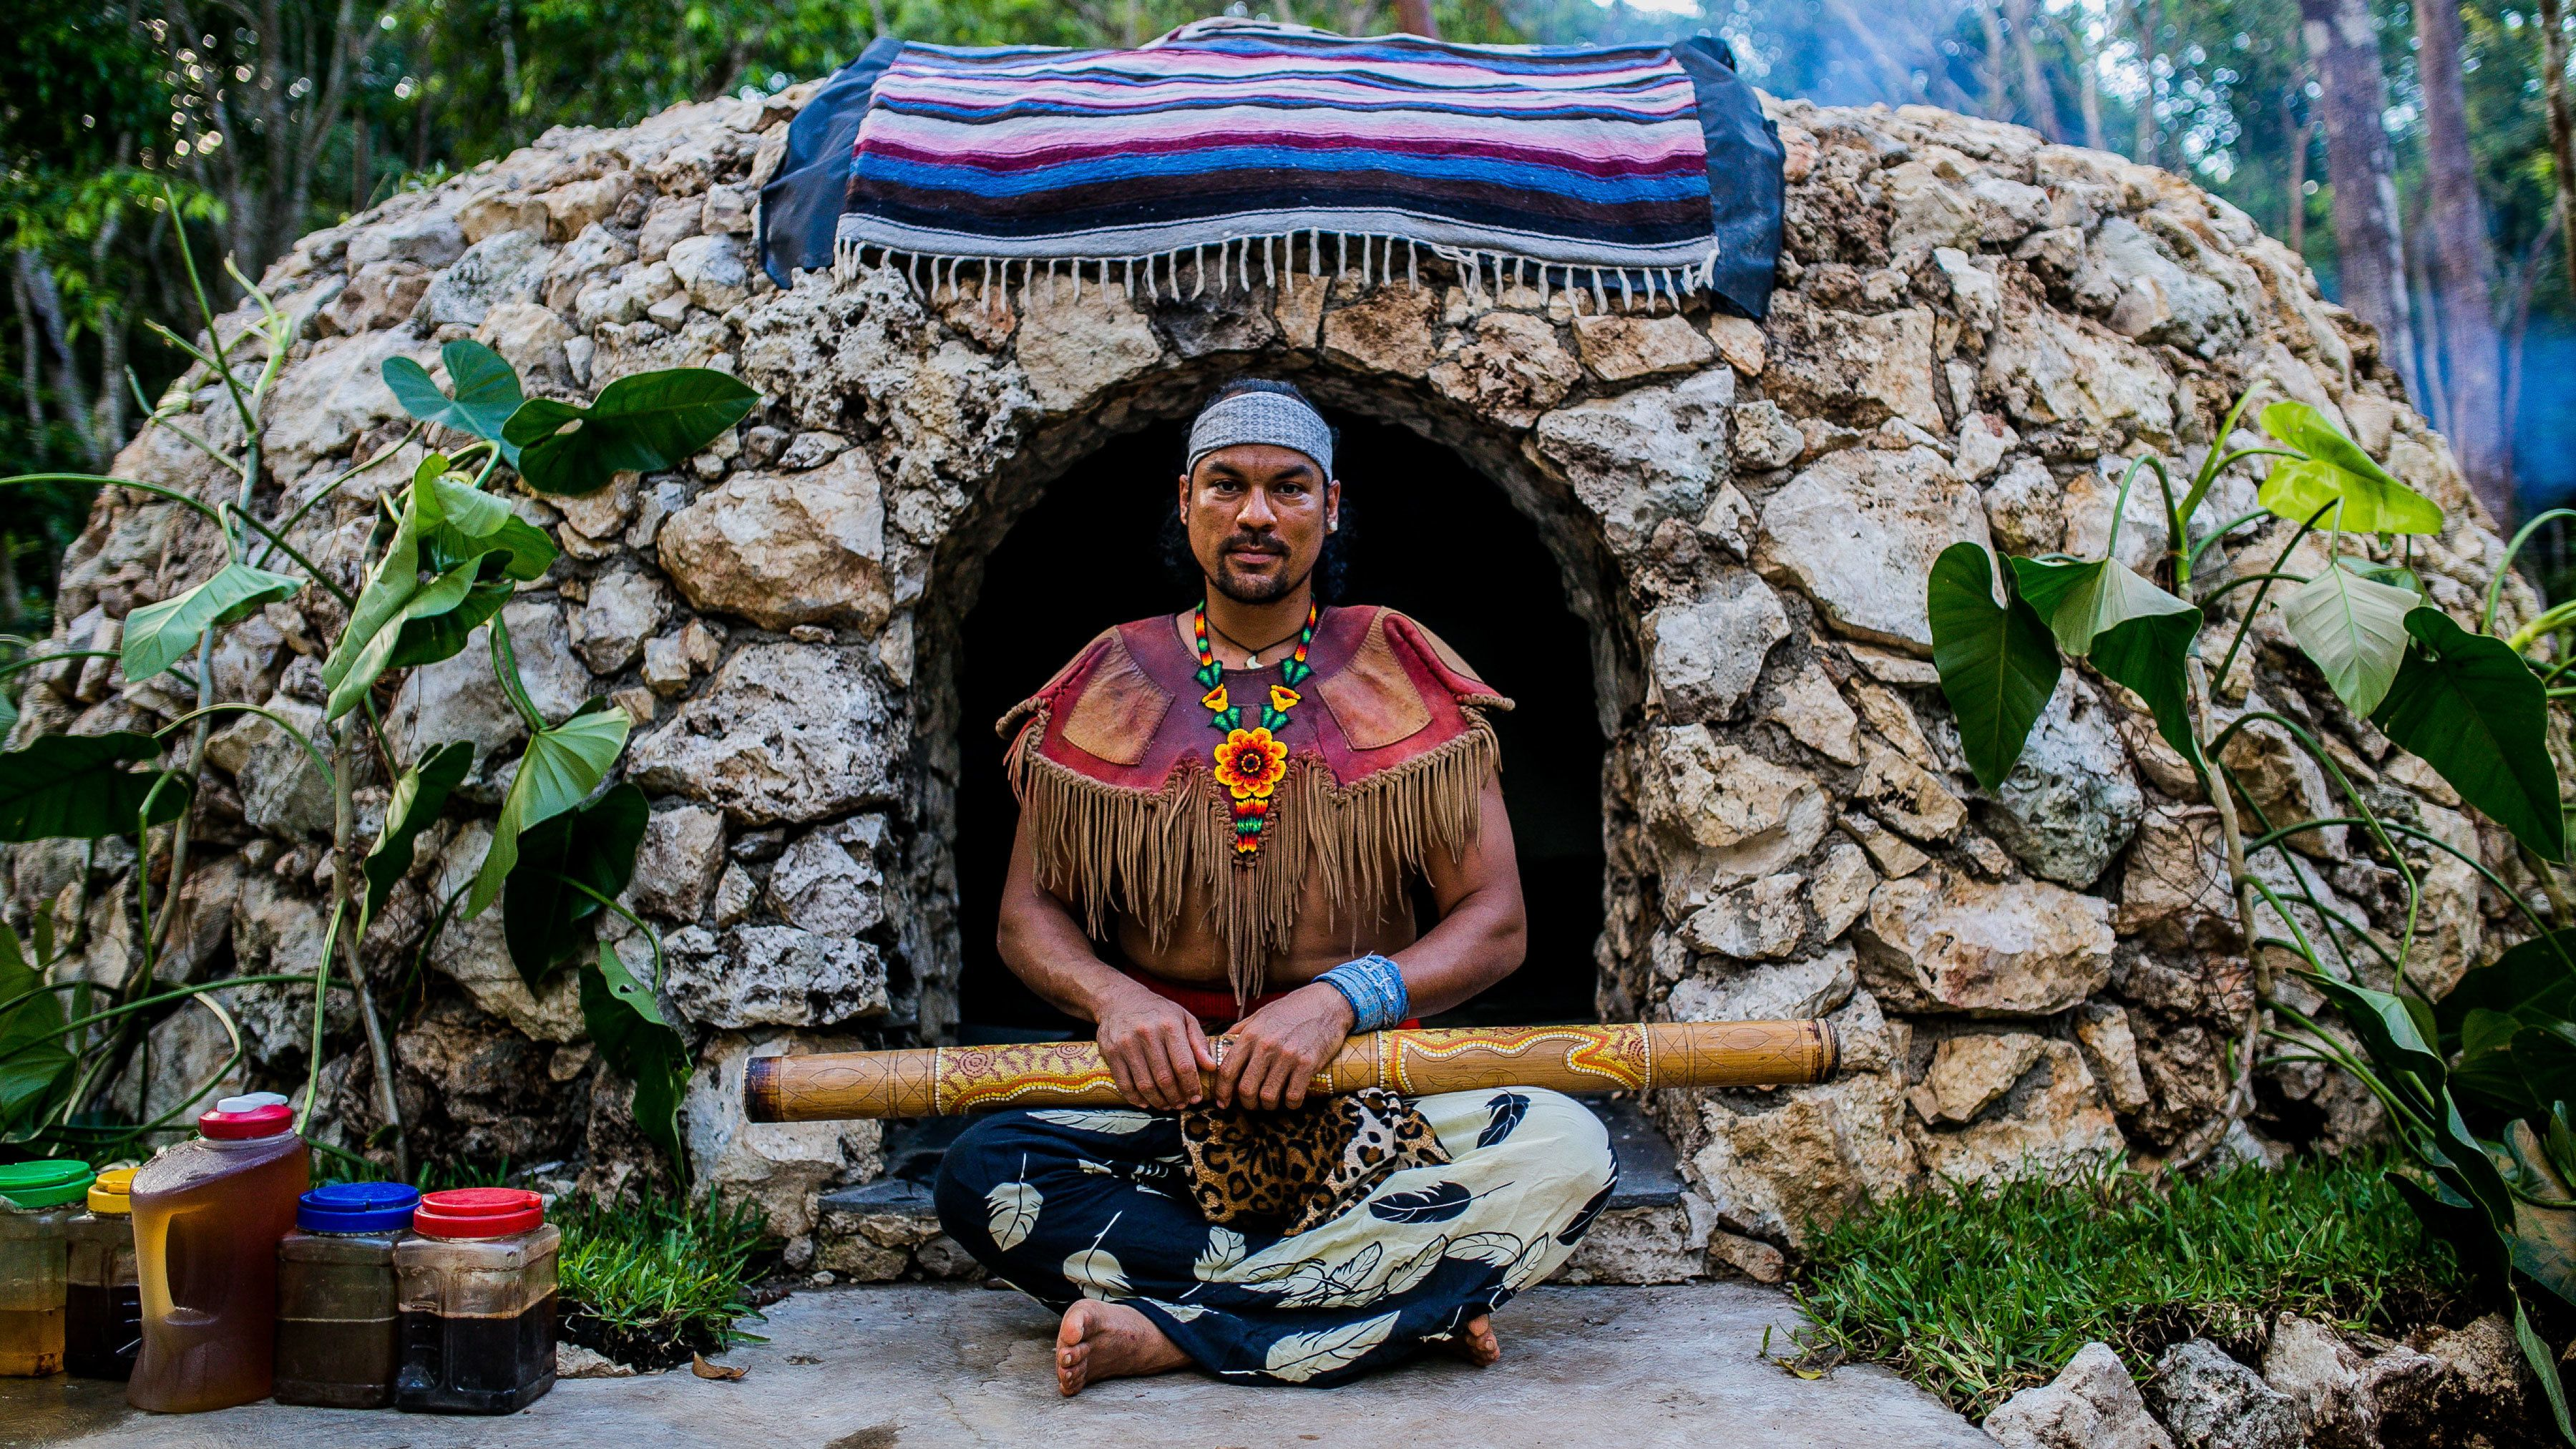 Shaman next to stone hut used for Temazcal Ritual